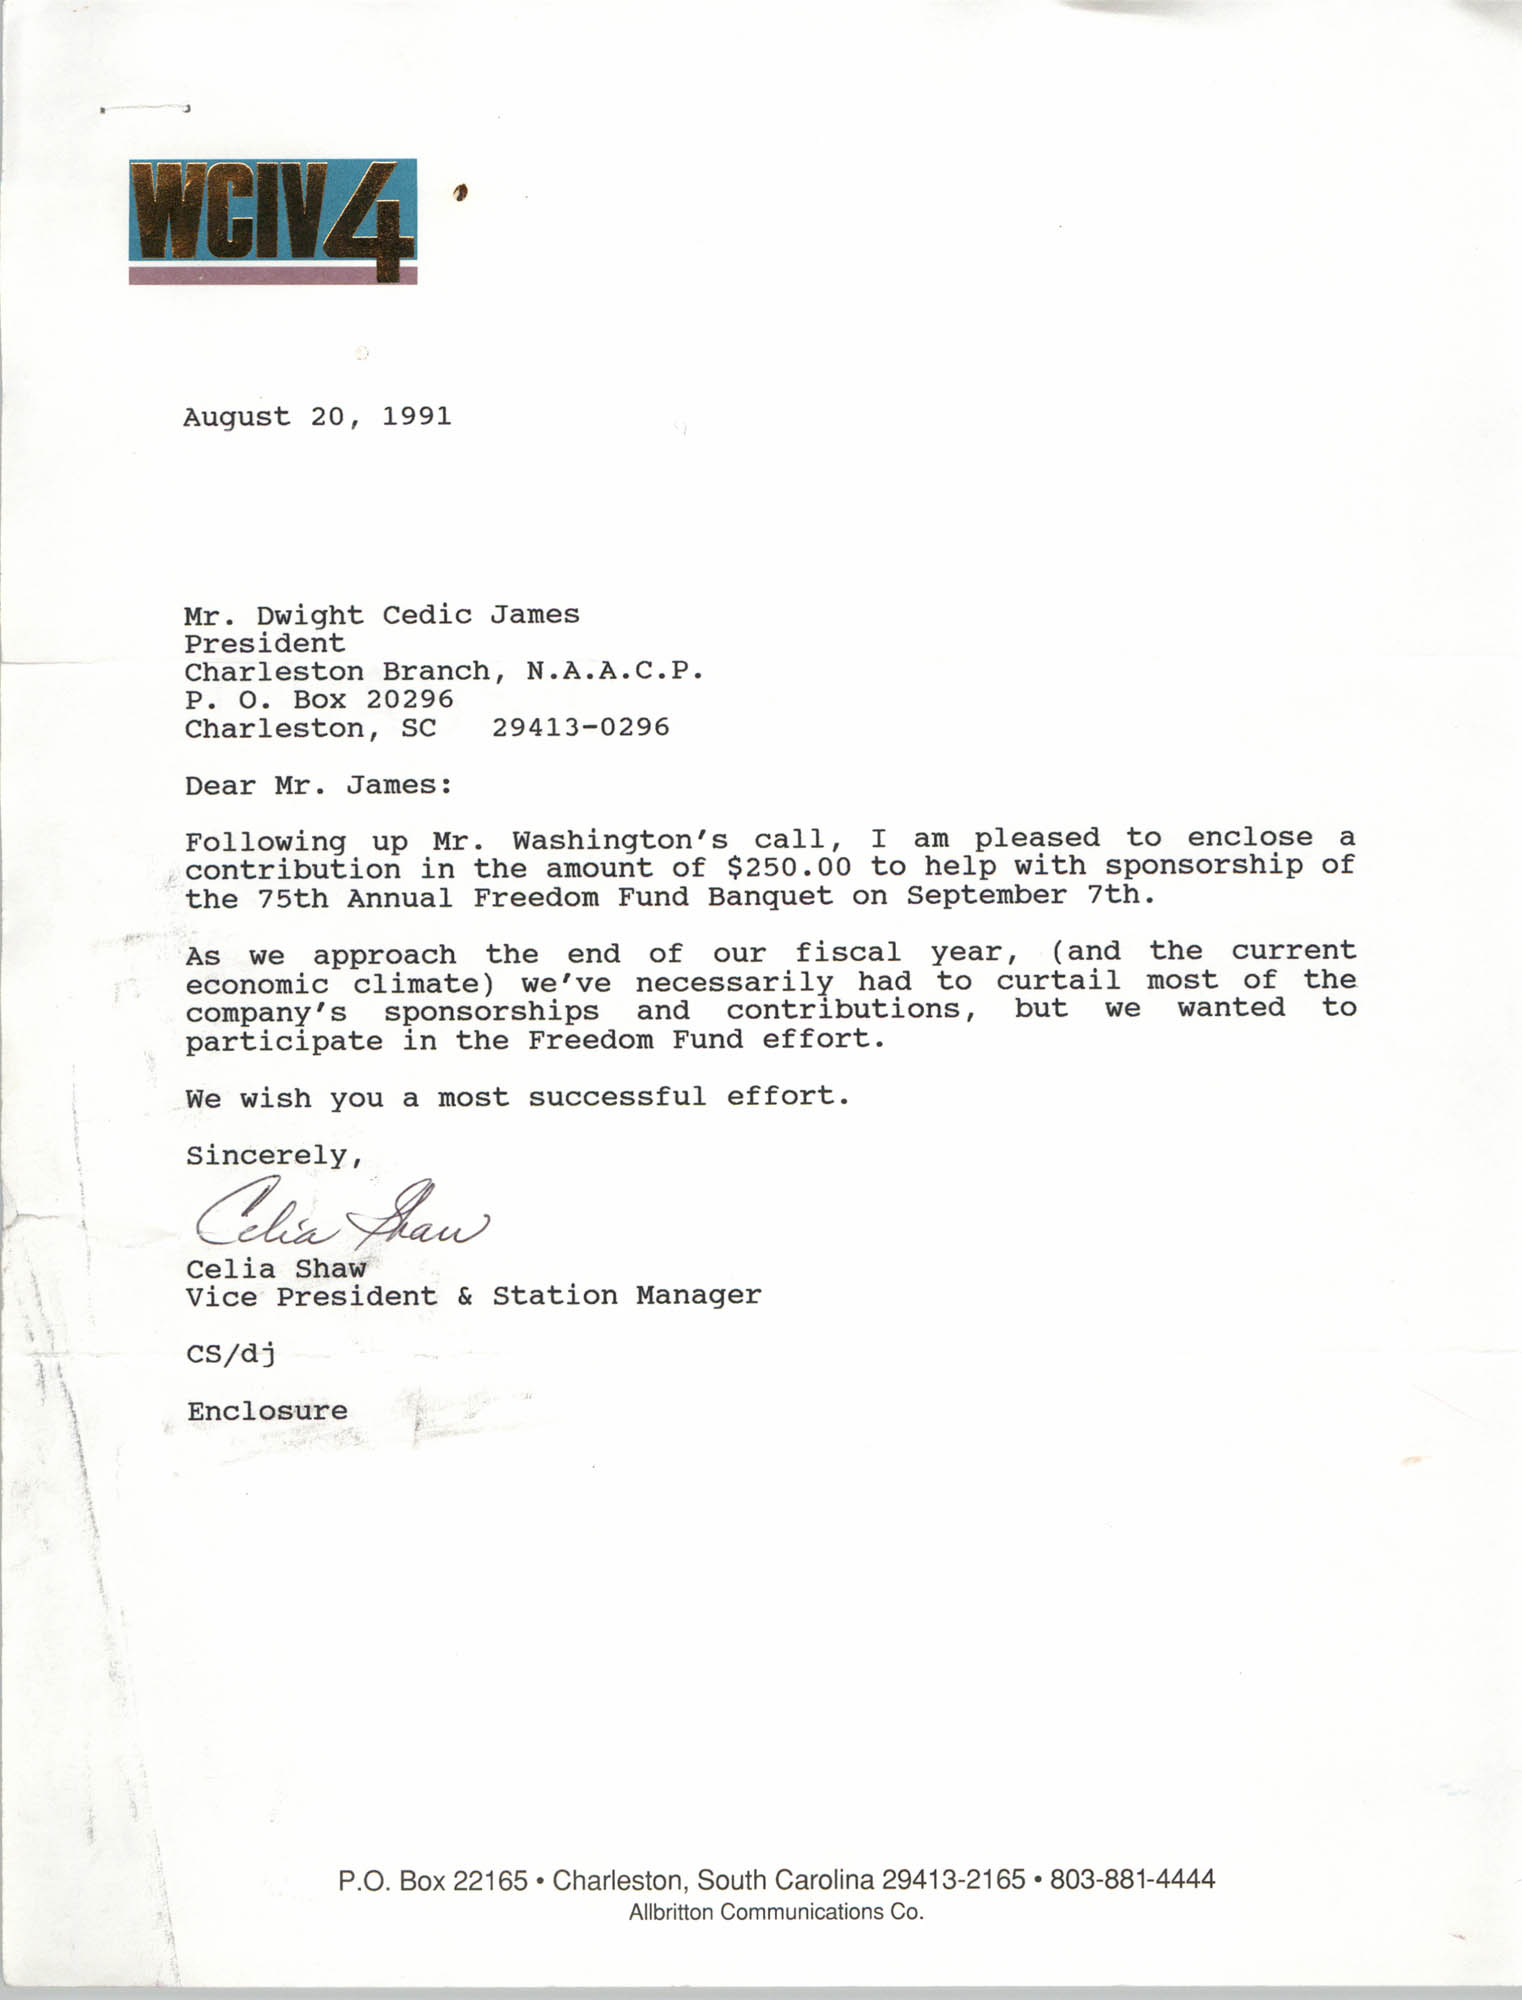 Letter from Celia Shaw to Dwight Cedric James, August 20, 1991